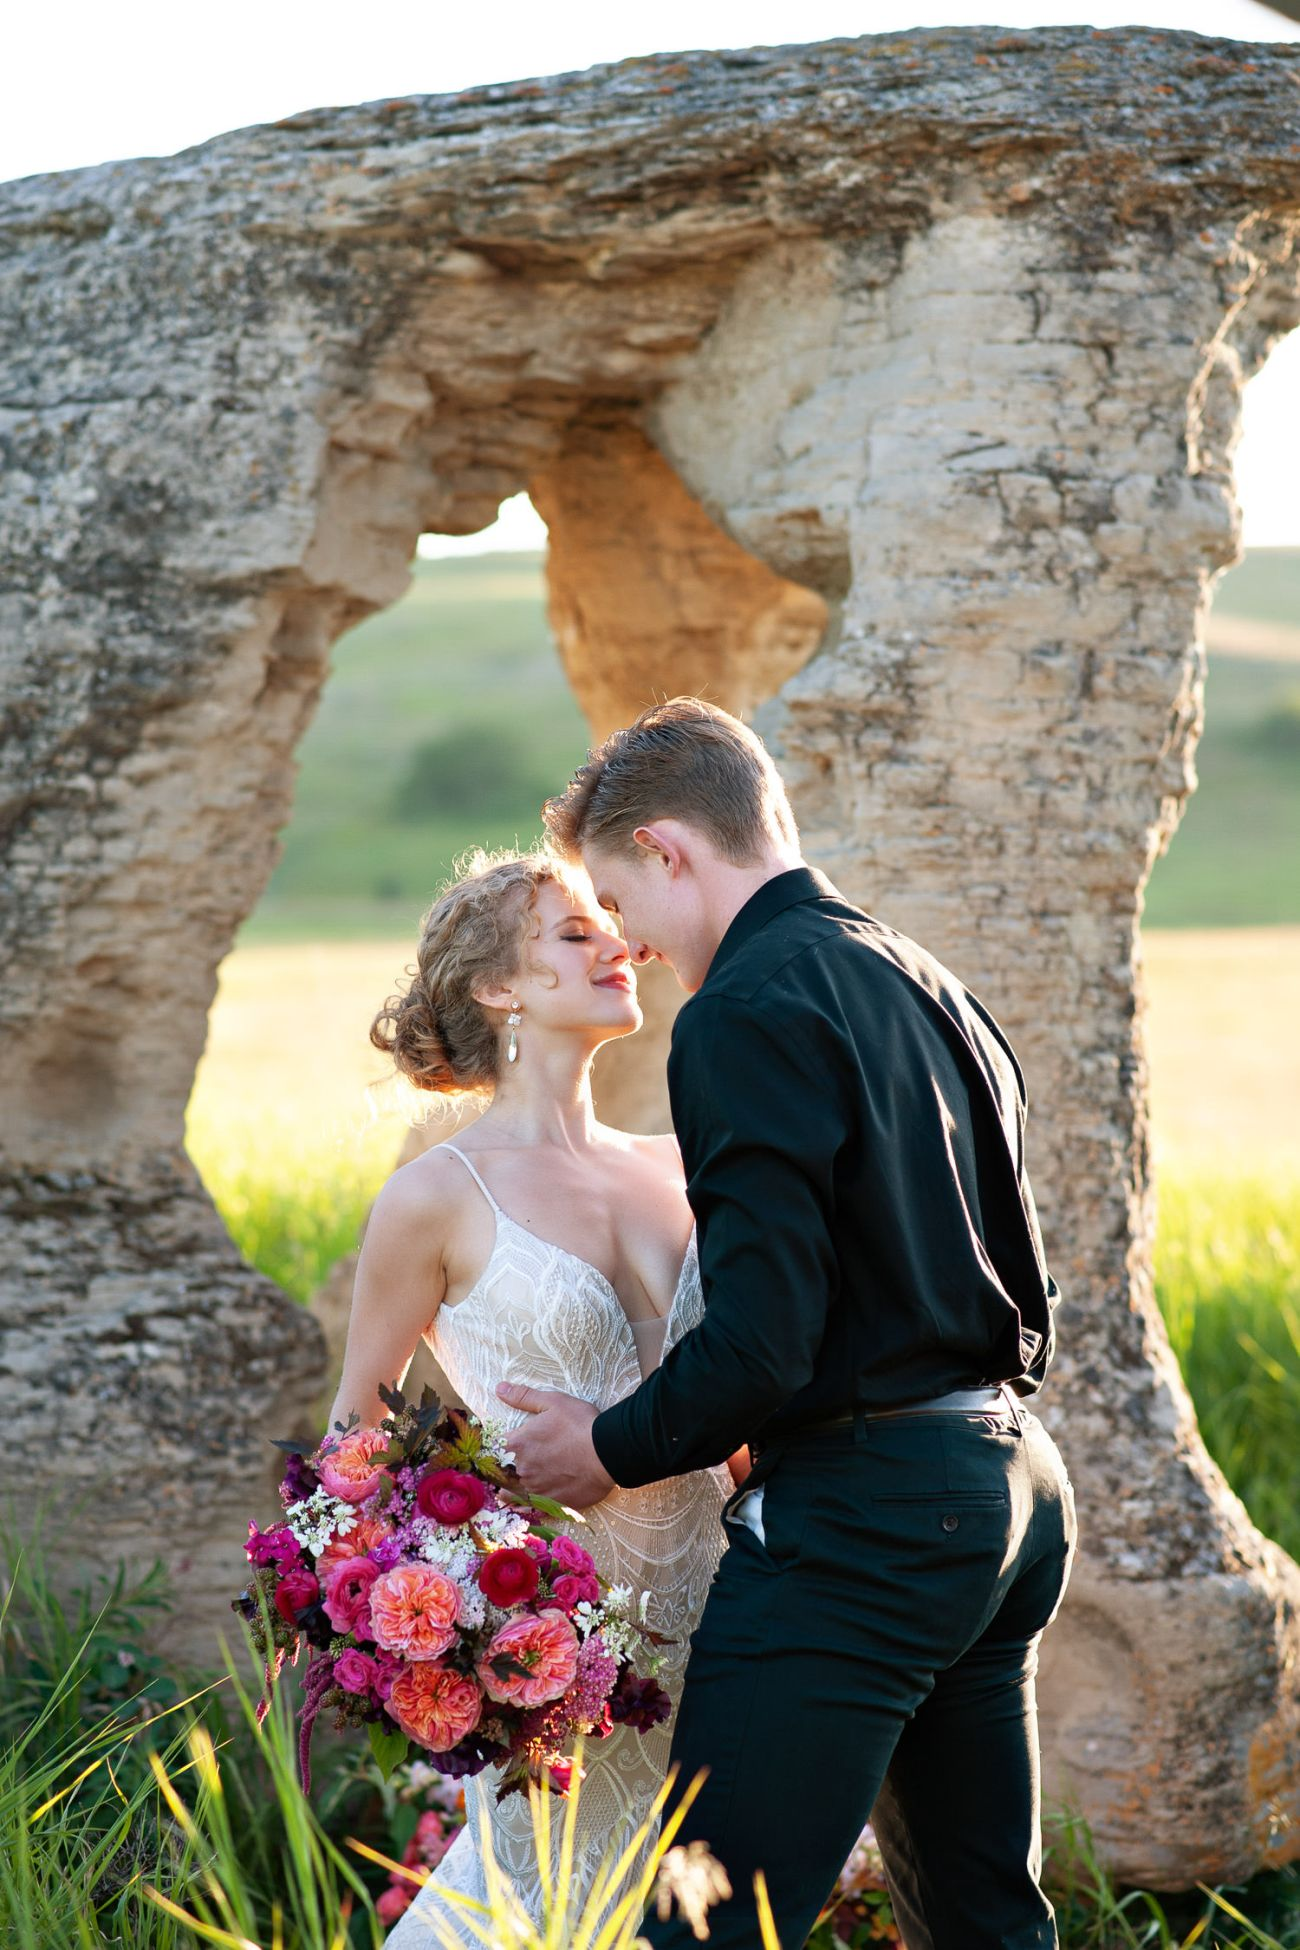 bride and groom kiss at their fall wedding captured by Tara Whittaker Photography